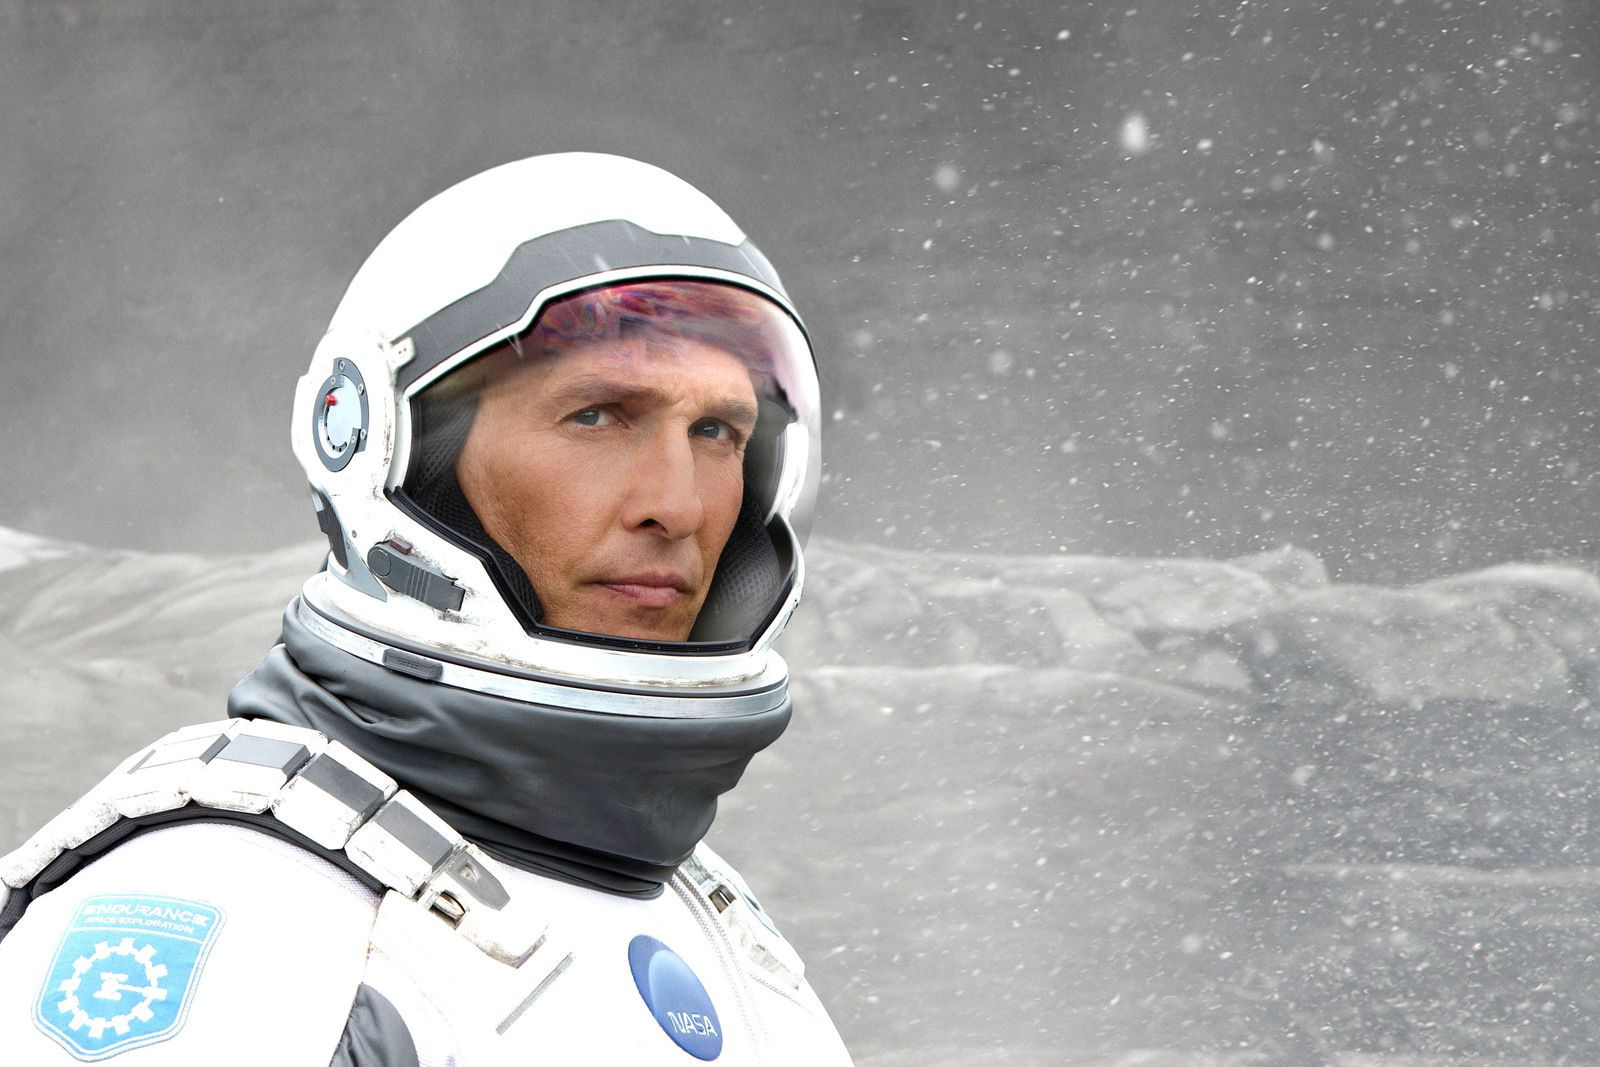 """""""Interstellar"""" (© 2014 Warner Bros. Entertainment, Inc. and Paramount Pictures Corporation. All Rights Reserved)"""